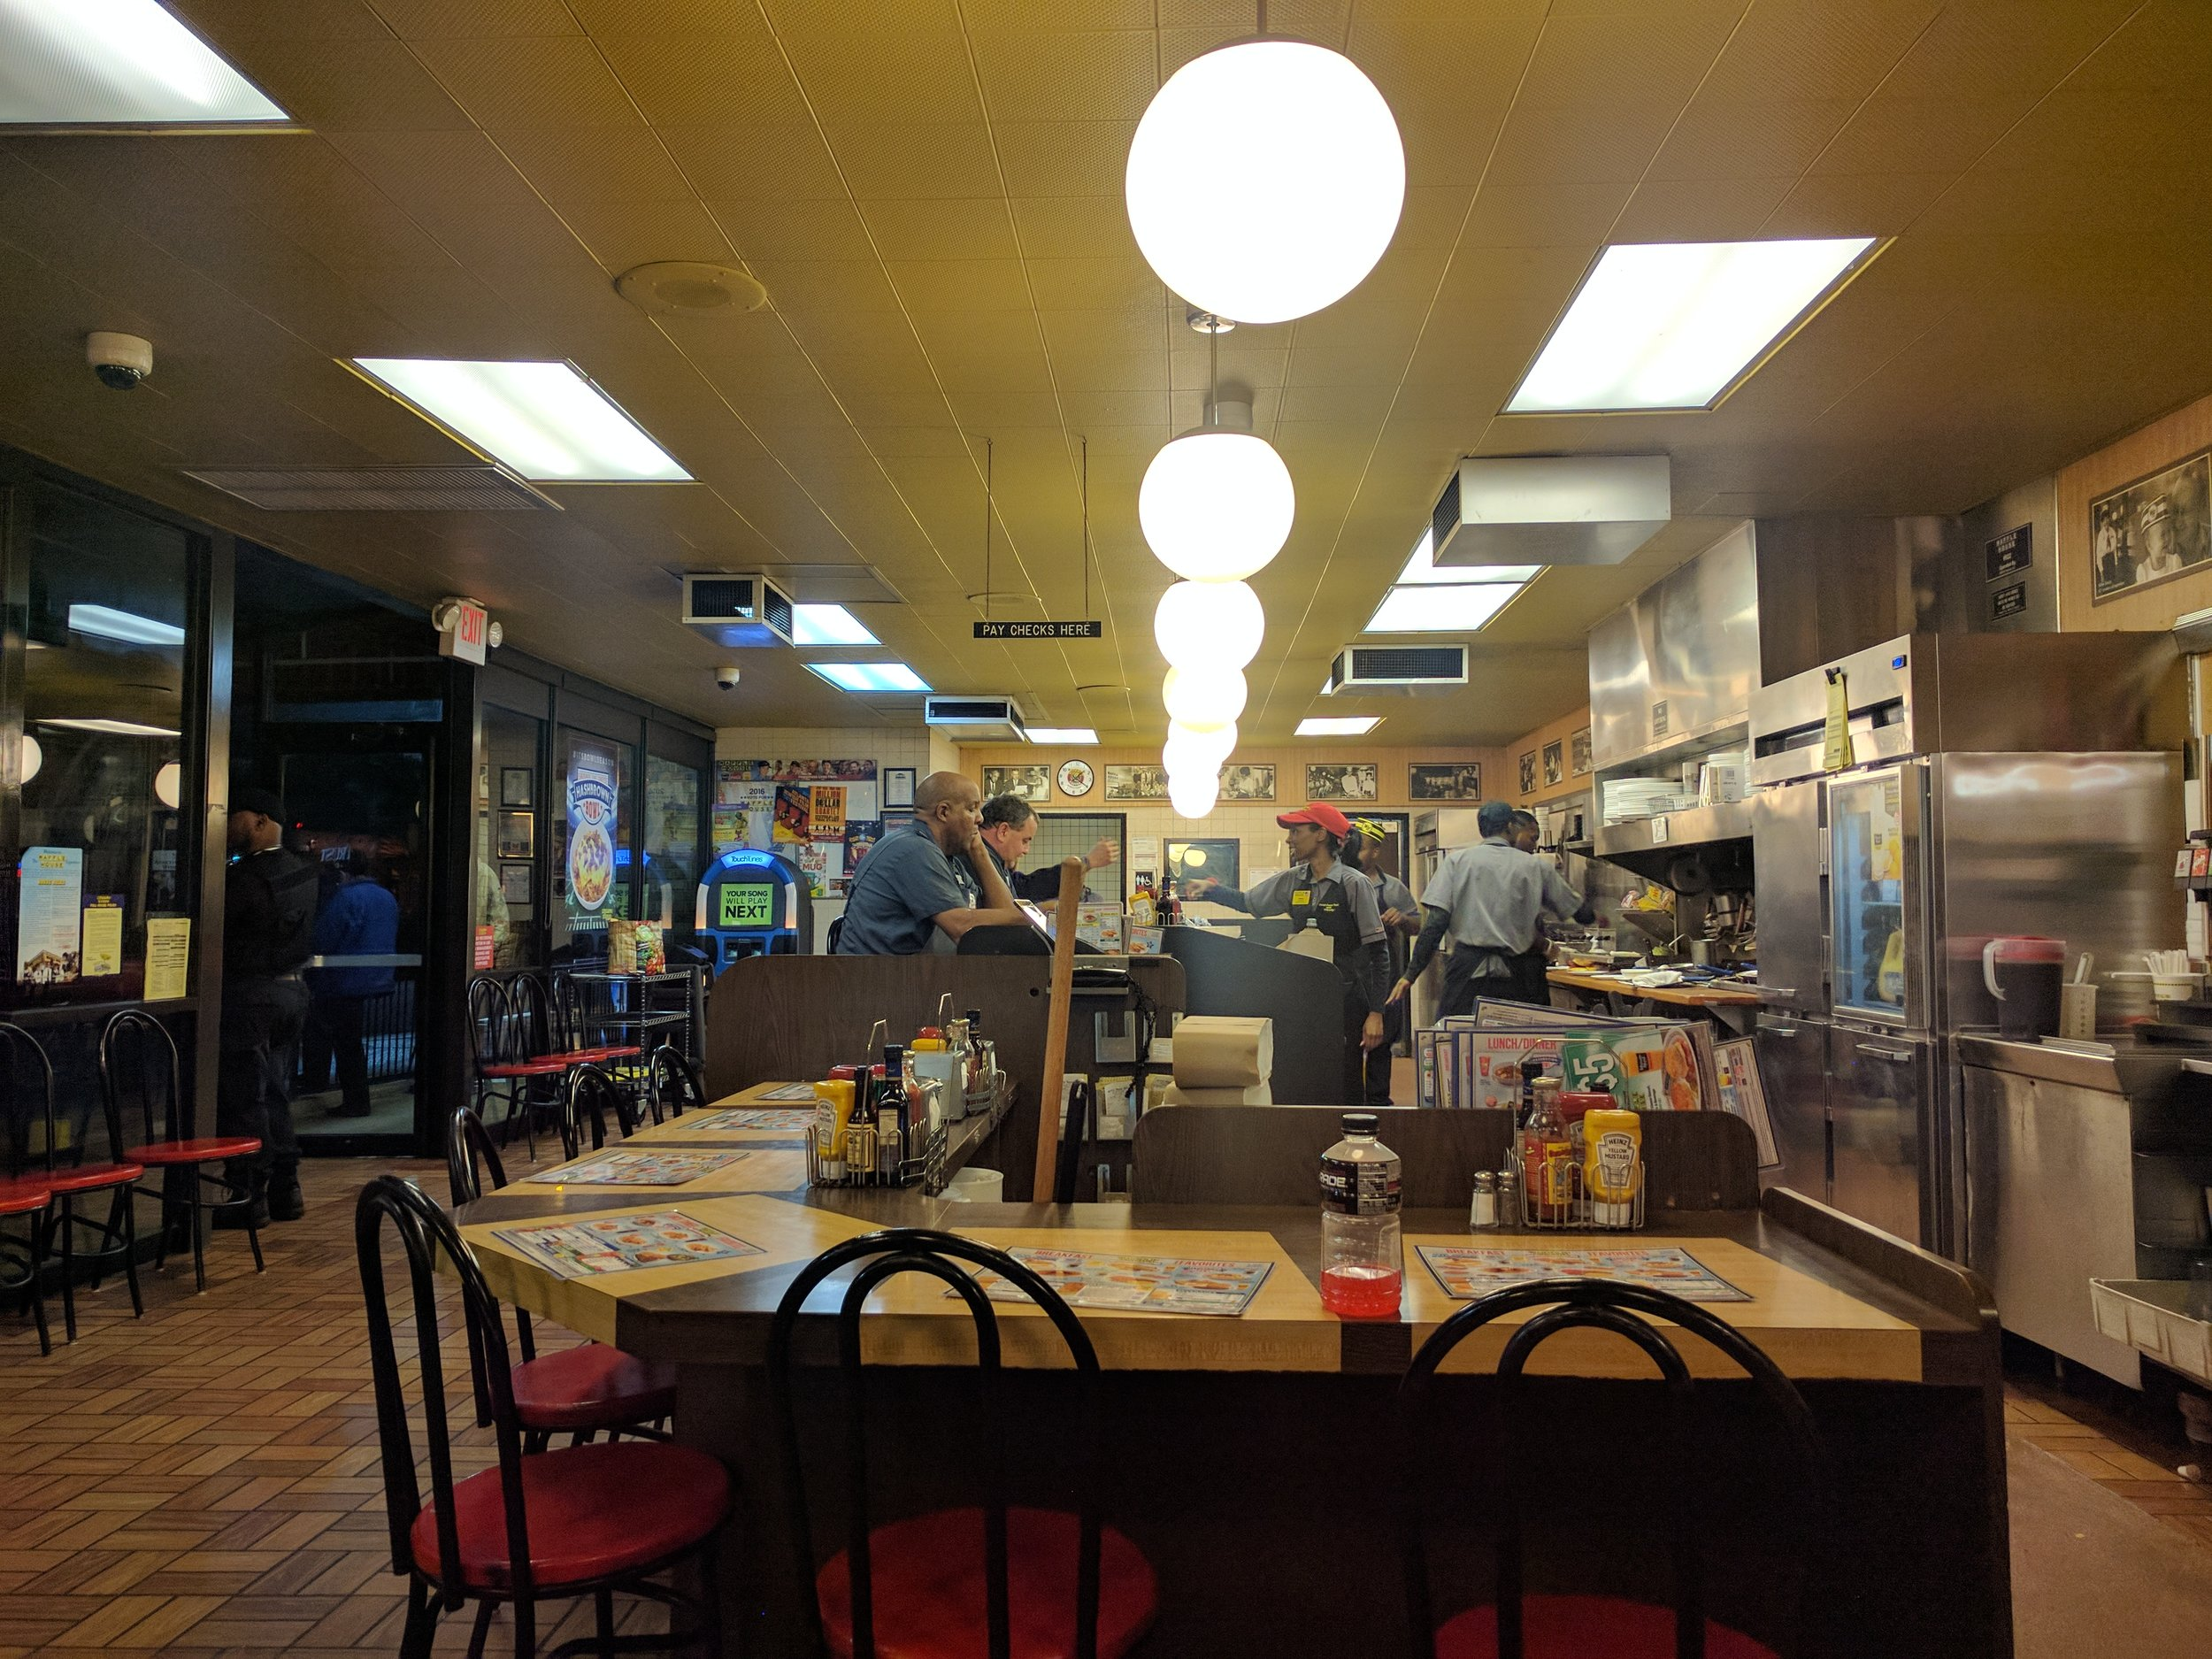 Waffle House, located in 1,614 locations within the contiguous United States. Open 24 hrs.